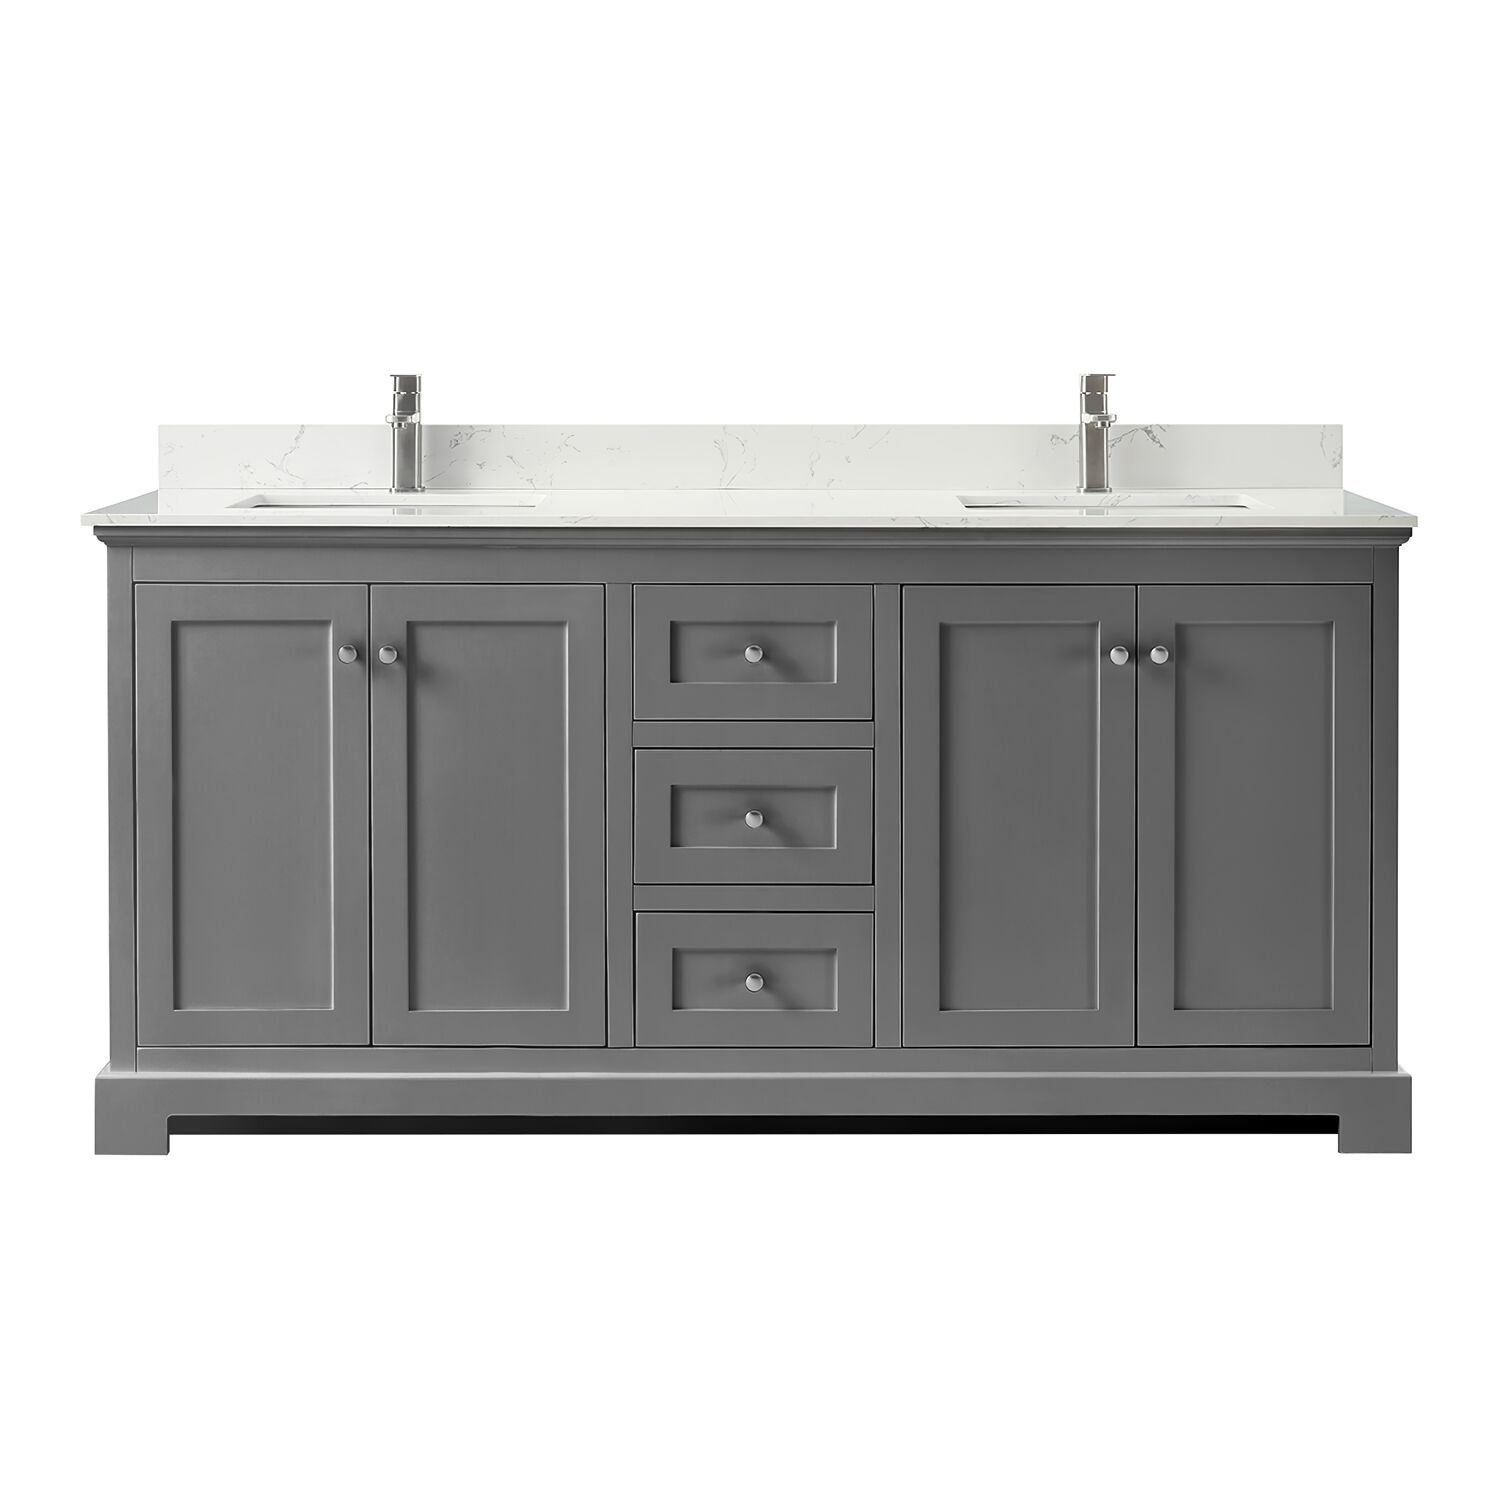 "72"" Double Bathroom Vanity in Dark Gray, Carrara Cultured Marble Countertop, Undermount Square Sinks, No Mirror"